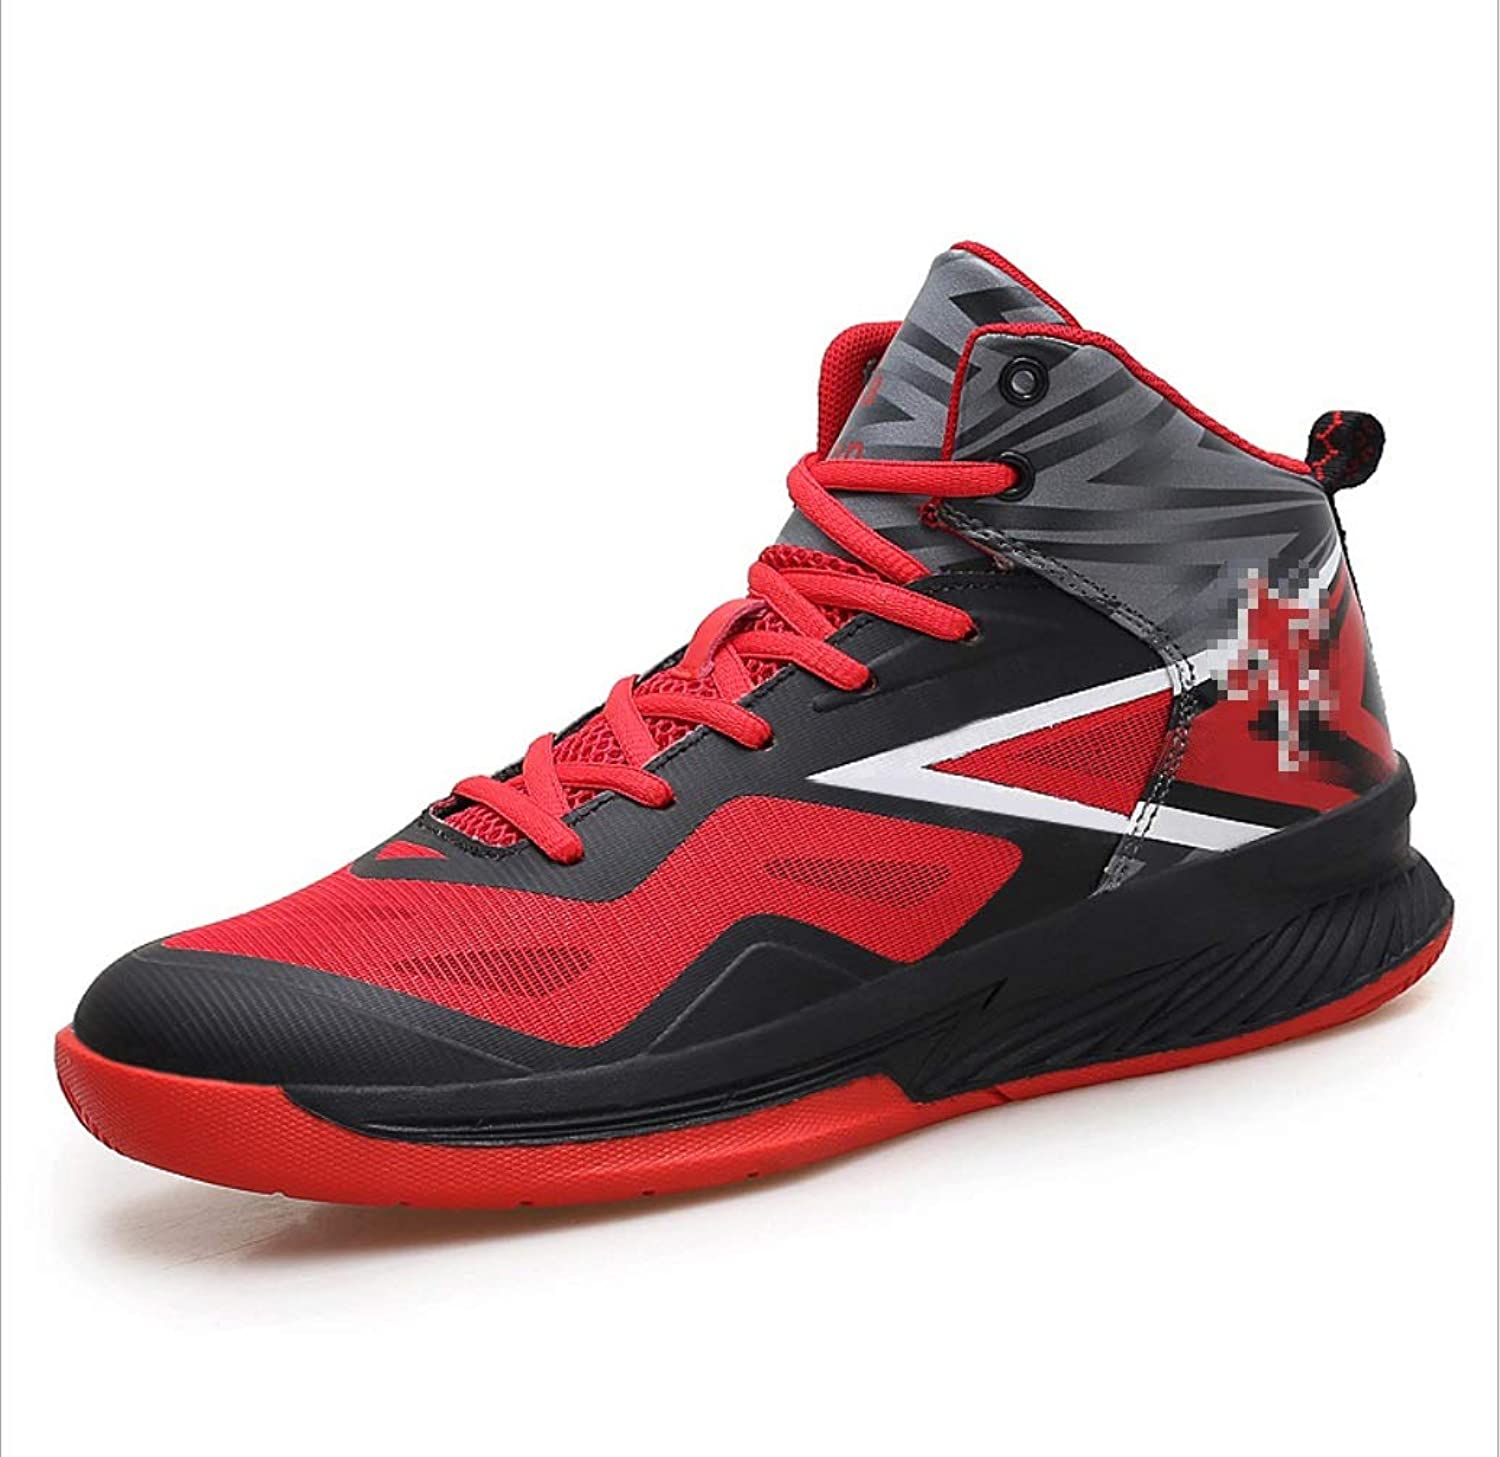 SHANGWU Men's Fashion Basketball shoes High To Help Men's shoes Autumn Wear And Breathable Increase Students Graffiti Casual shoes Combat shoes